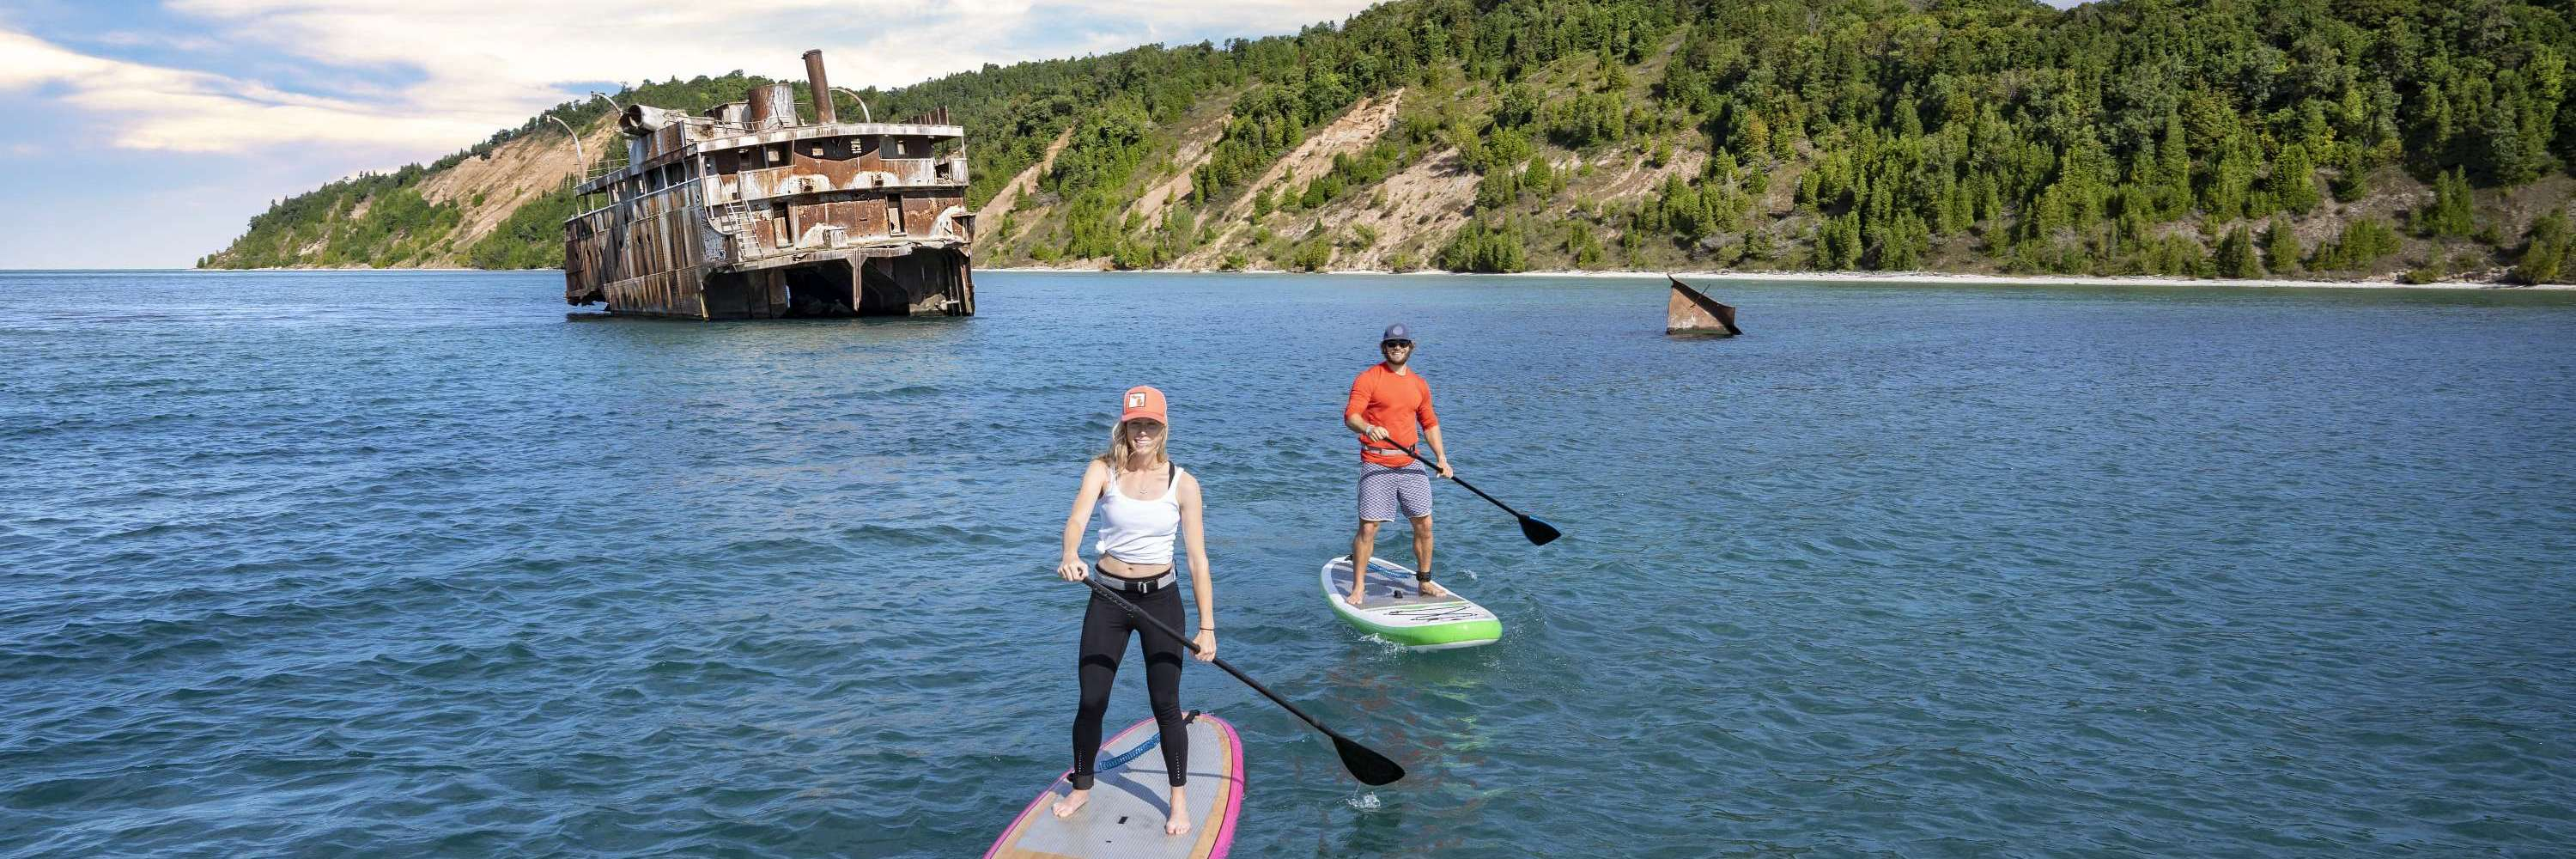 Paddle boarders by shipwreck near South Manitou Island